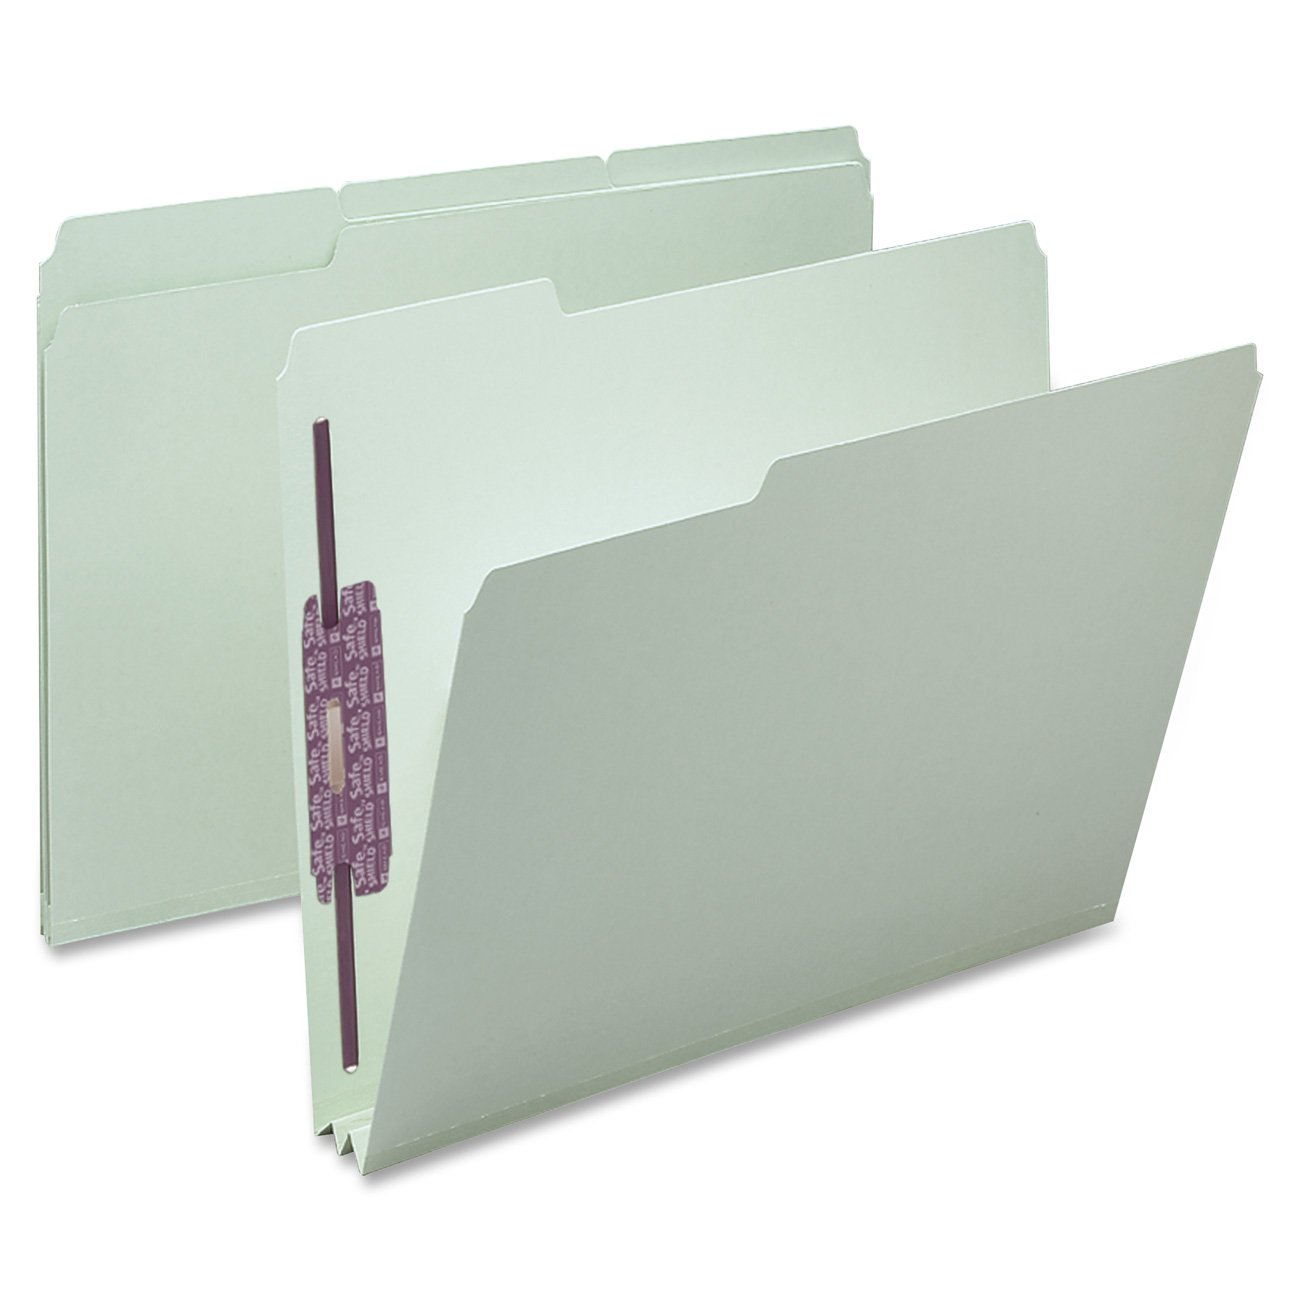 Smead Pressboard Fastener File Folder with SafeSHIELD Fasteners, 2 Fasteners, 1/3-Cut Tab, 2'' Expansion, Letter Size, Gray/Green, 25 per Box (14934) by Smead